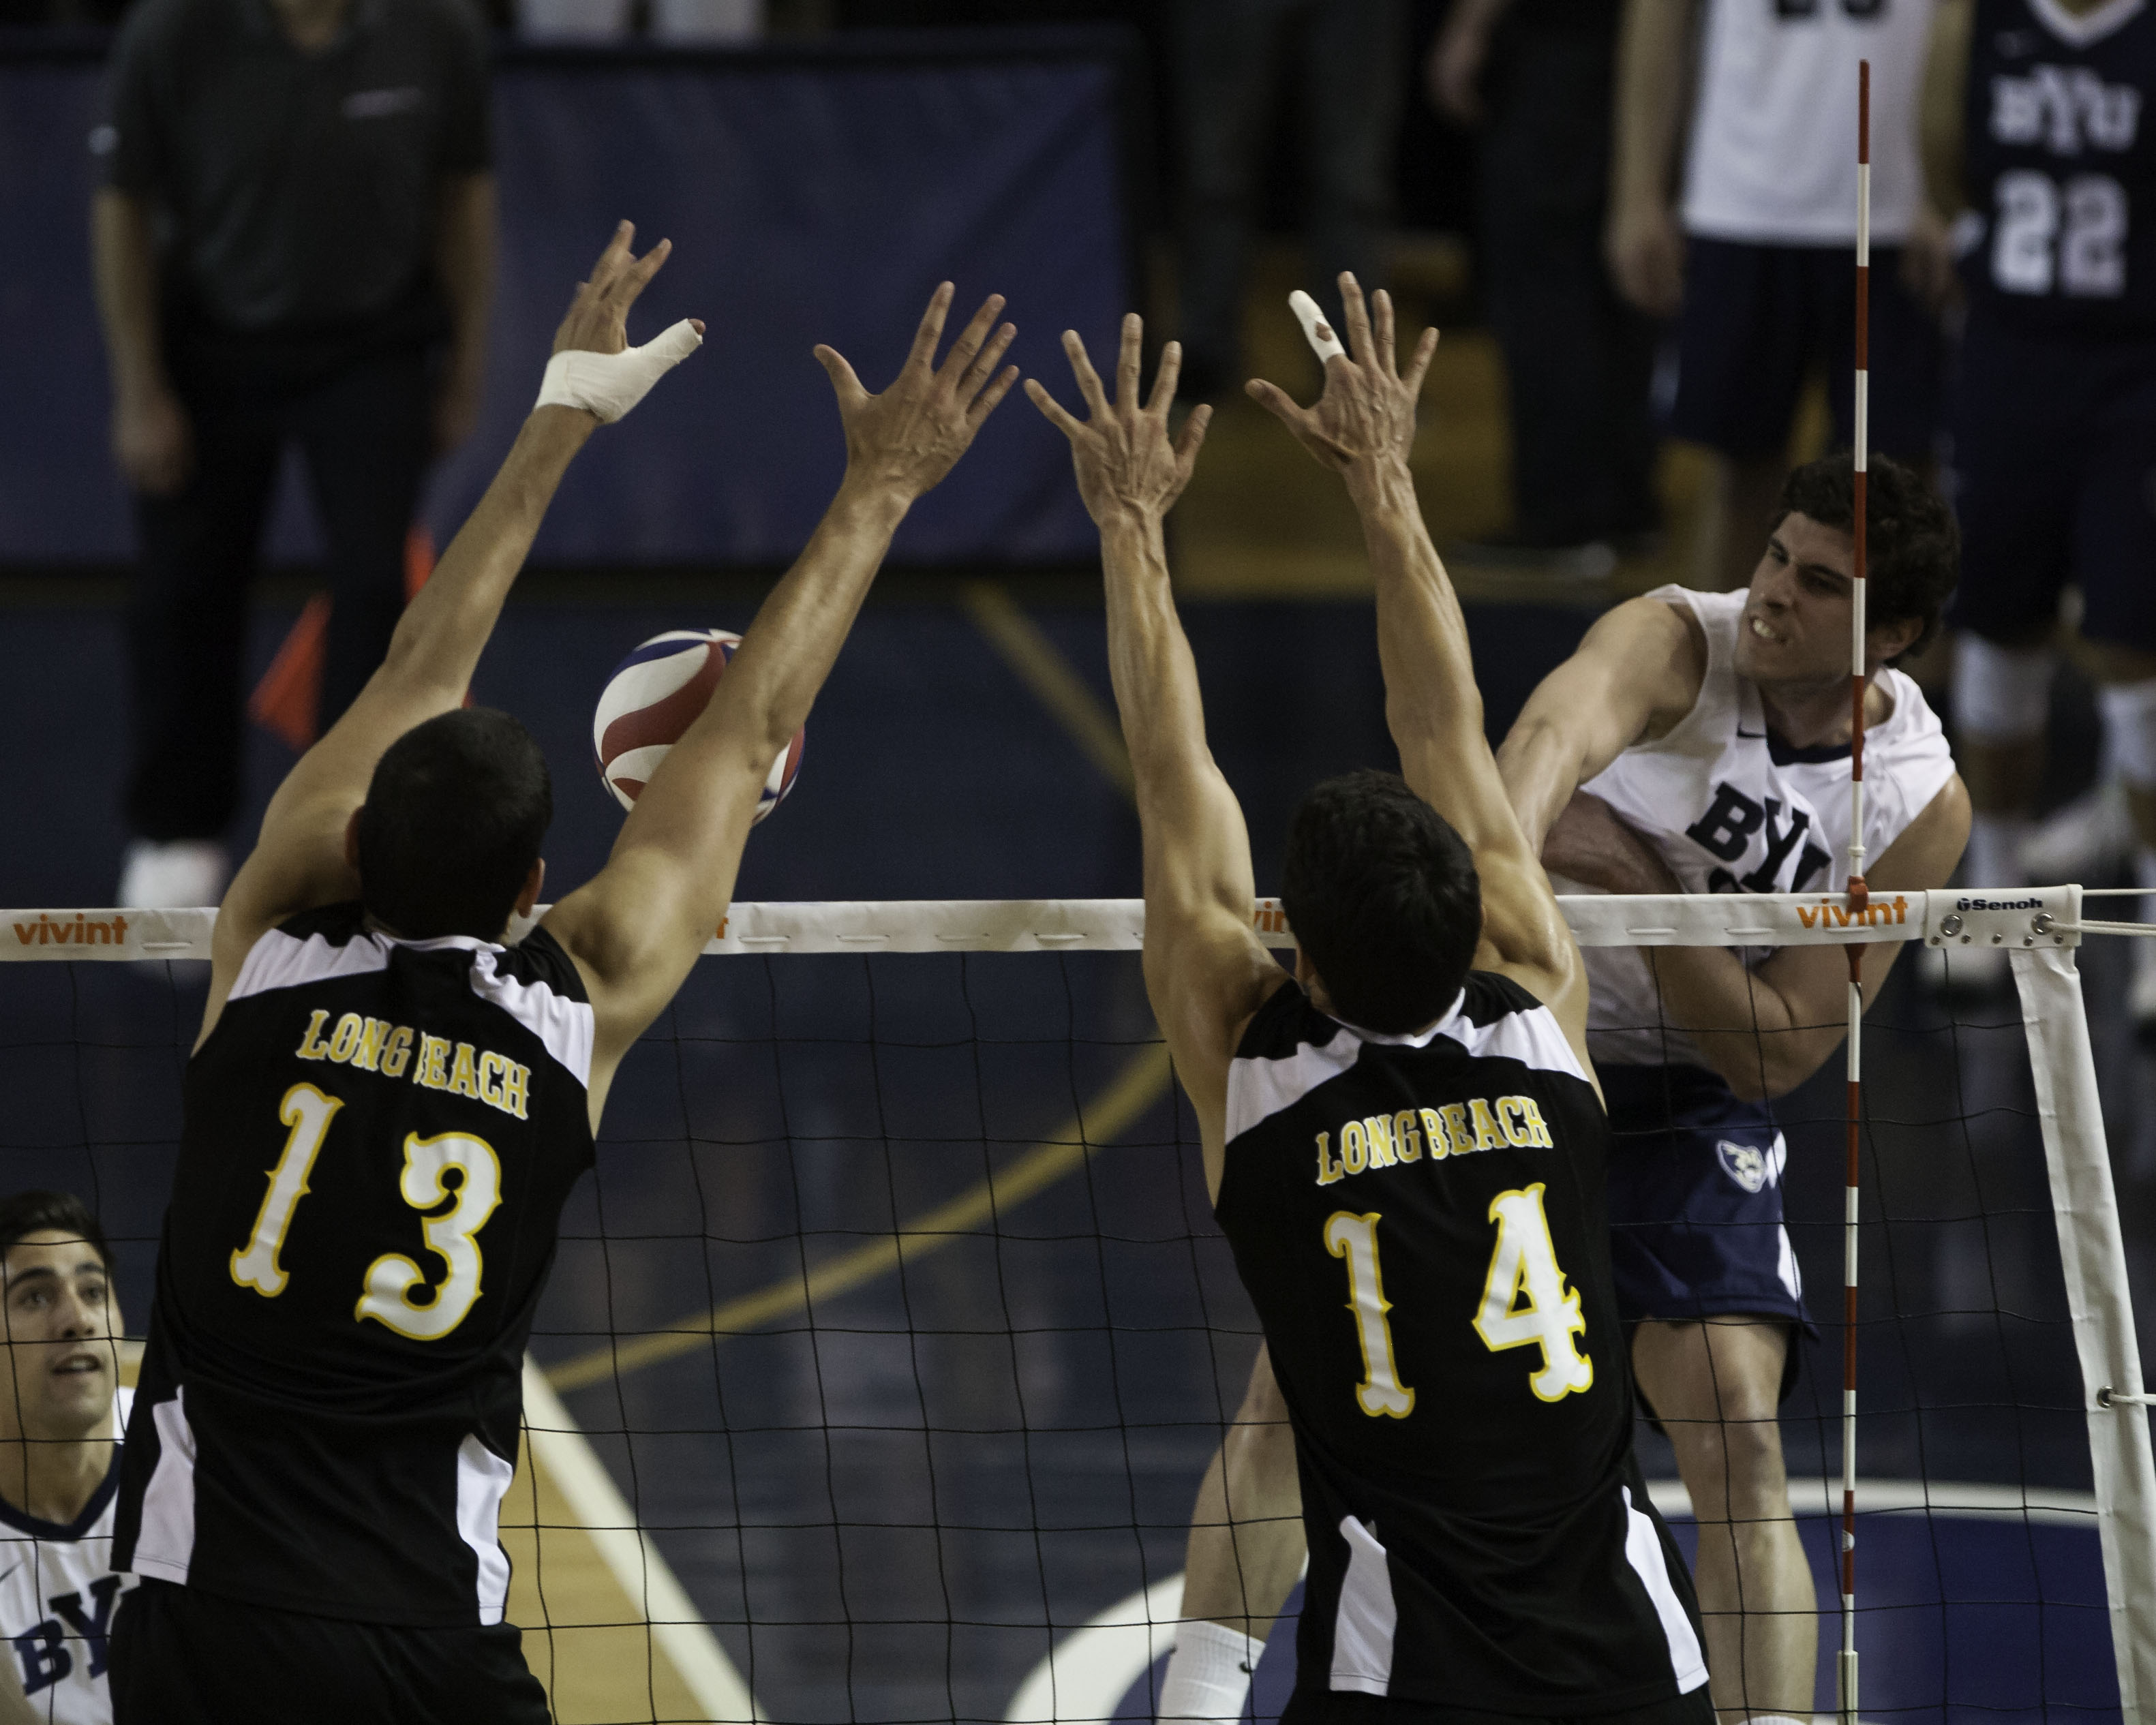 Outside hitter Josue Rivera kills the ball in the conference championship game against Long Beach State. (Photo by Elliott Miller)